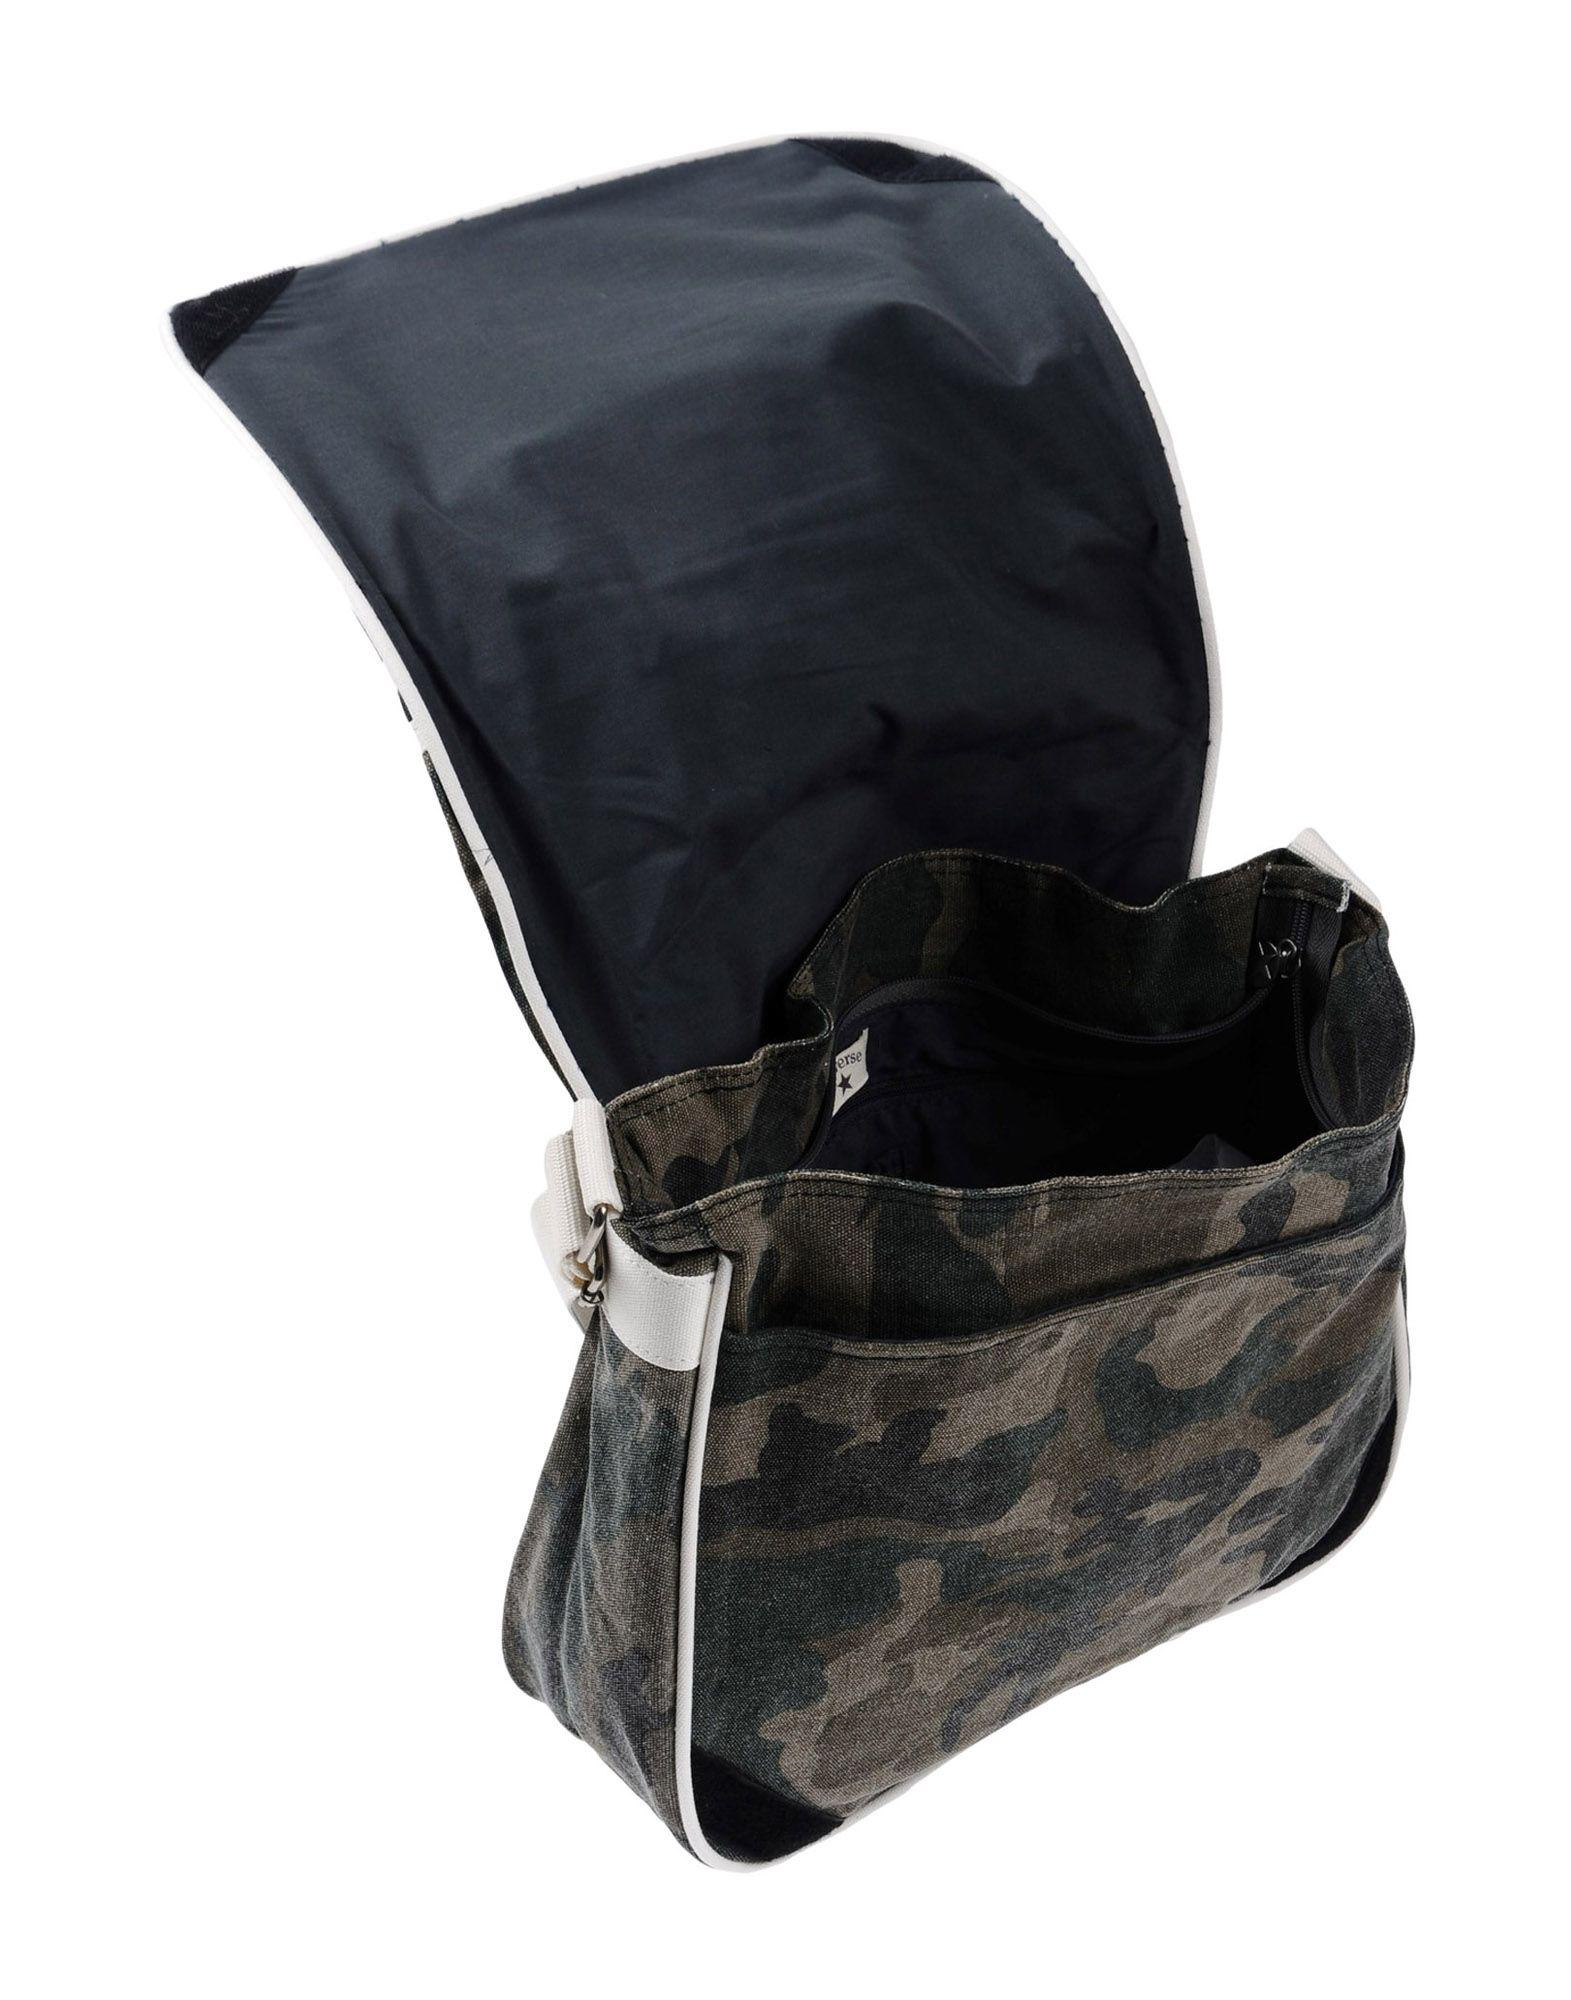 Converse Canvas Cross-body Bag in Military Green (Black)